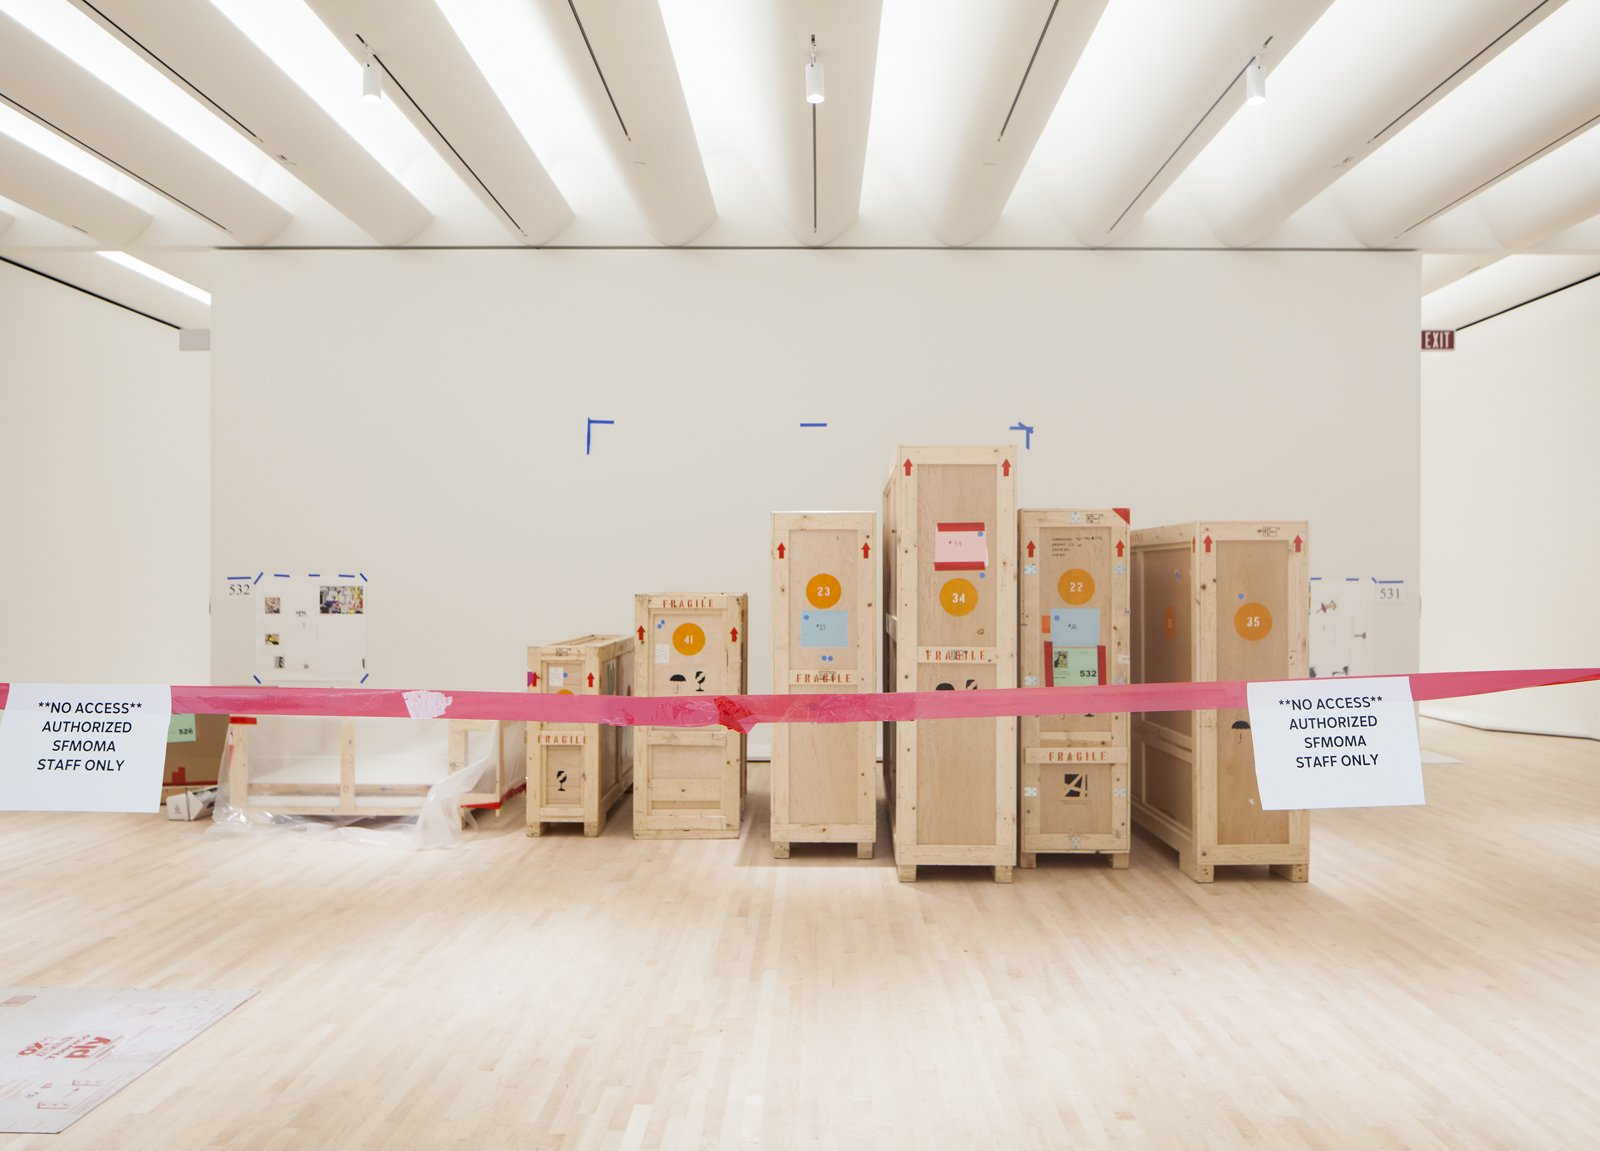 Crates sit behind a red rope in an empty gallery